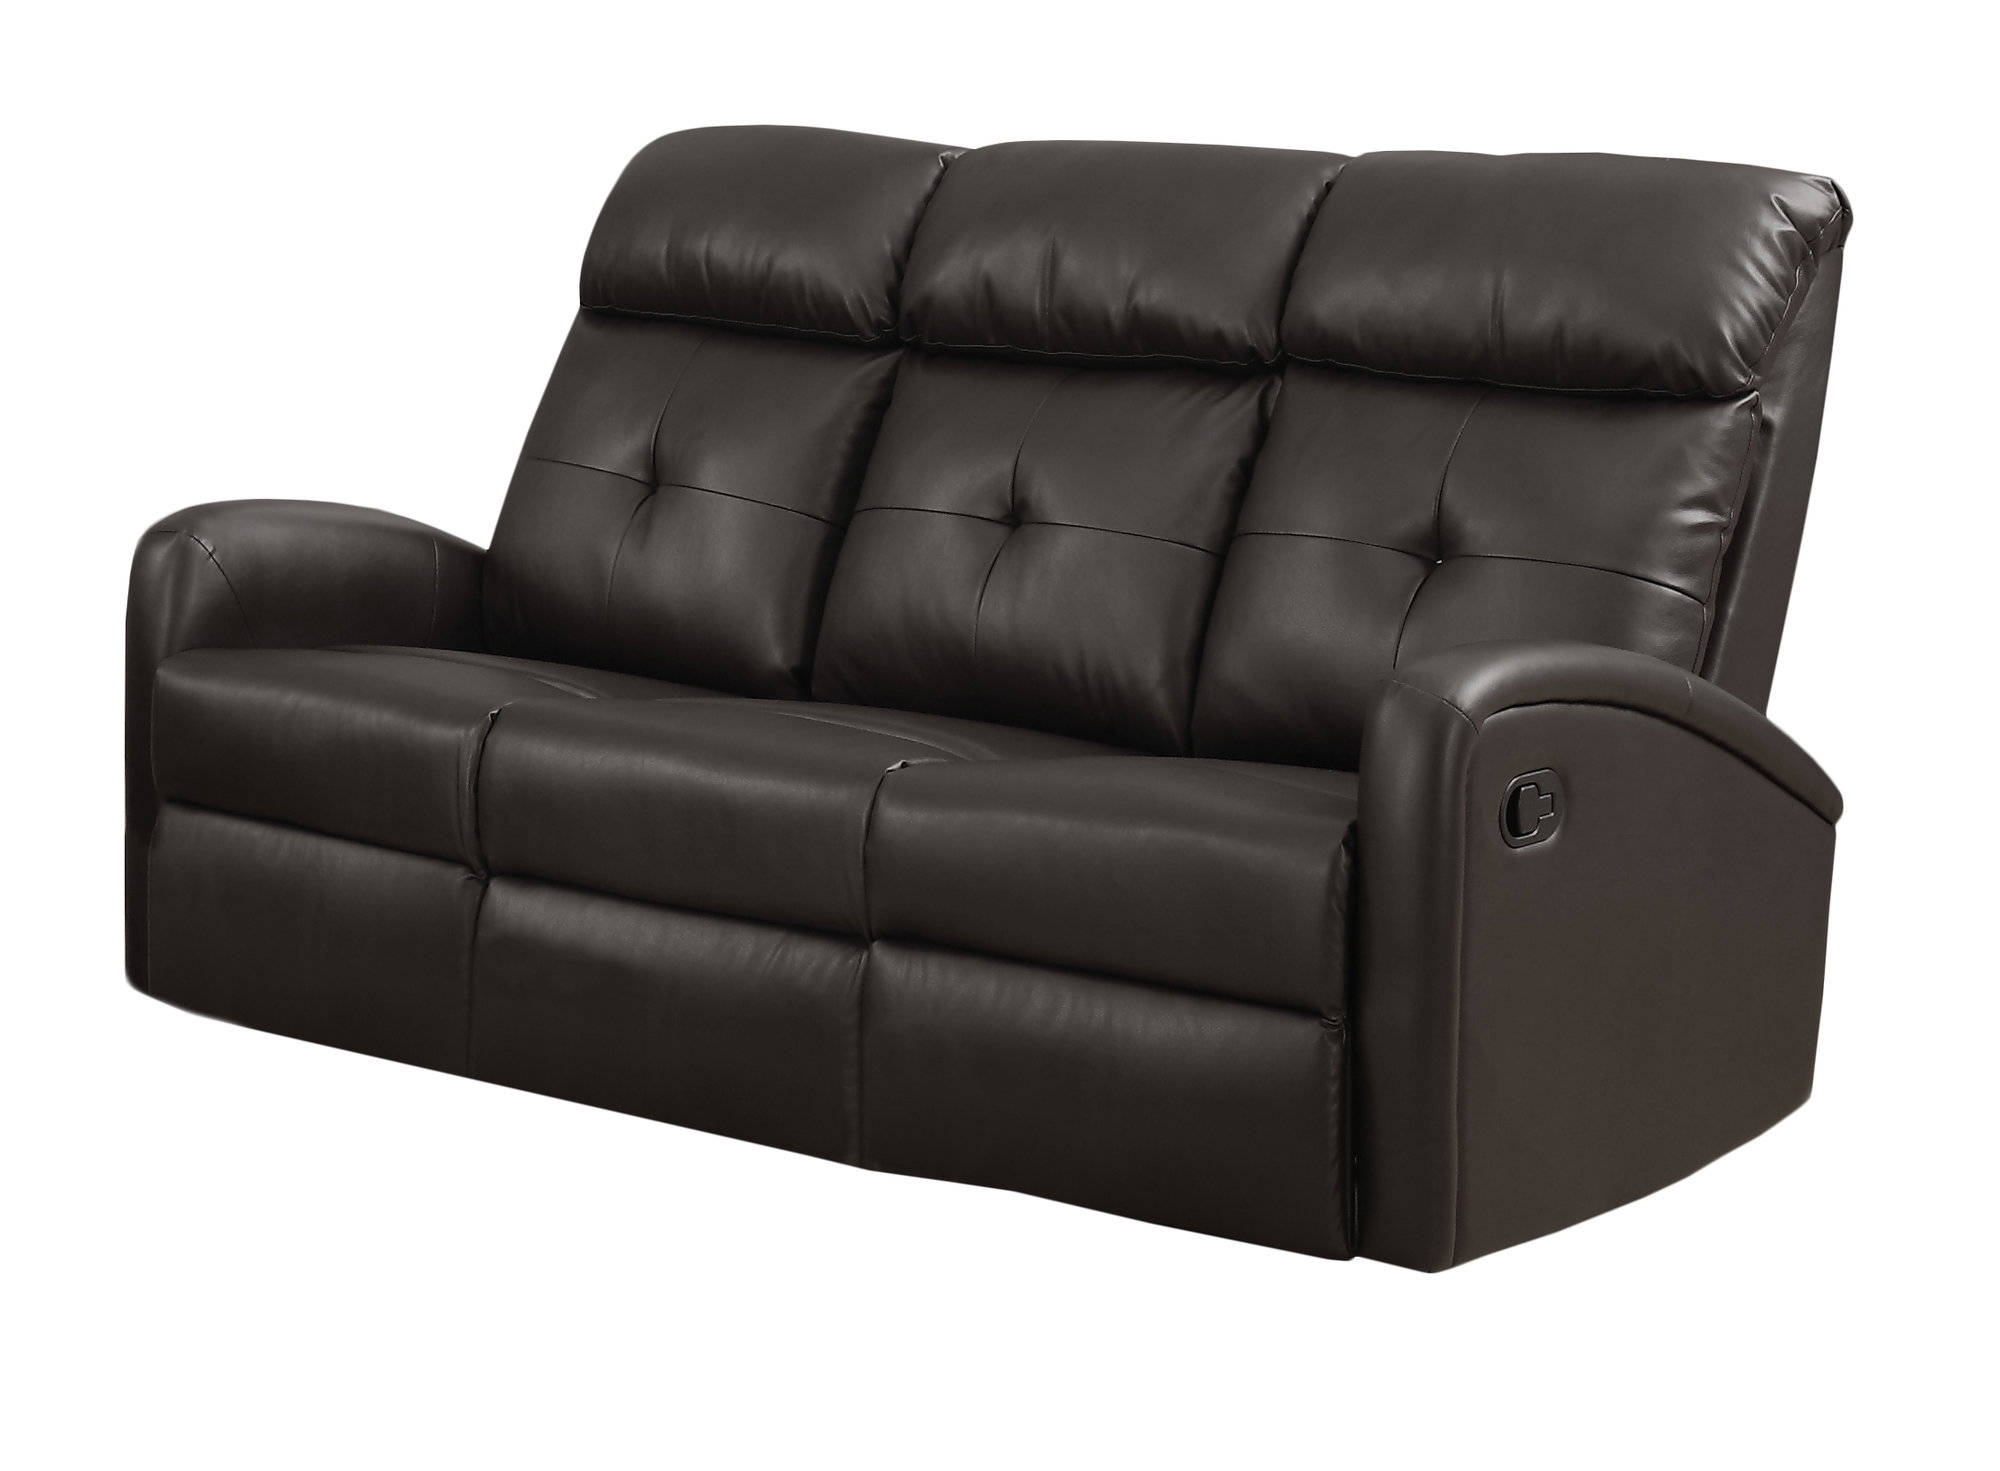 Magnificent Monarch Specialties Brown Tufted Back Reclining Sofa The Ncnpc Chair Design For Home Ncnpcorg